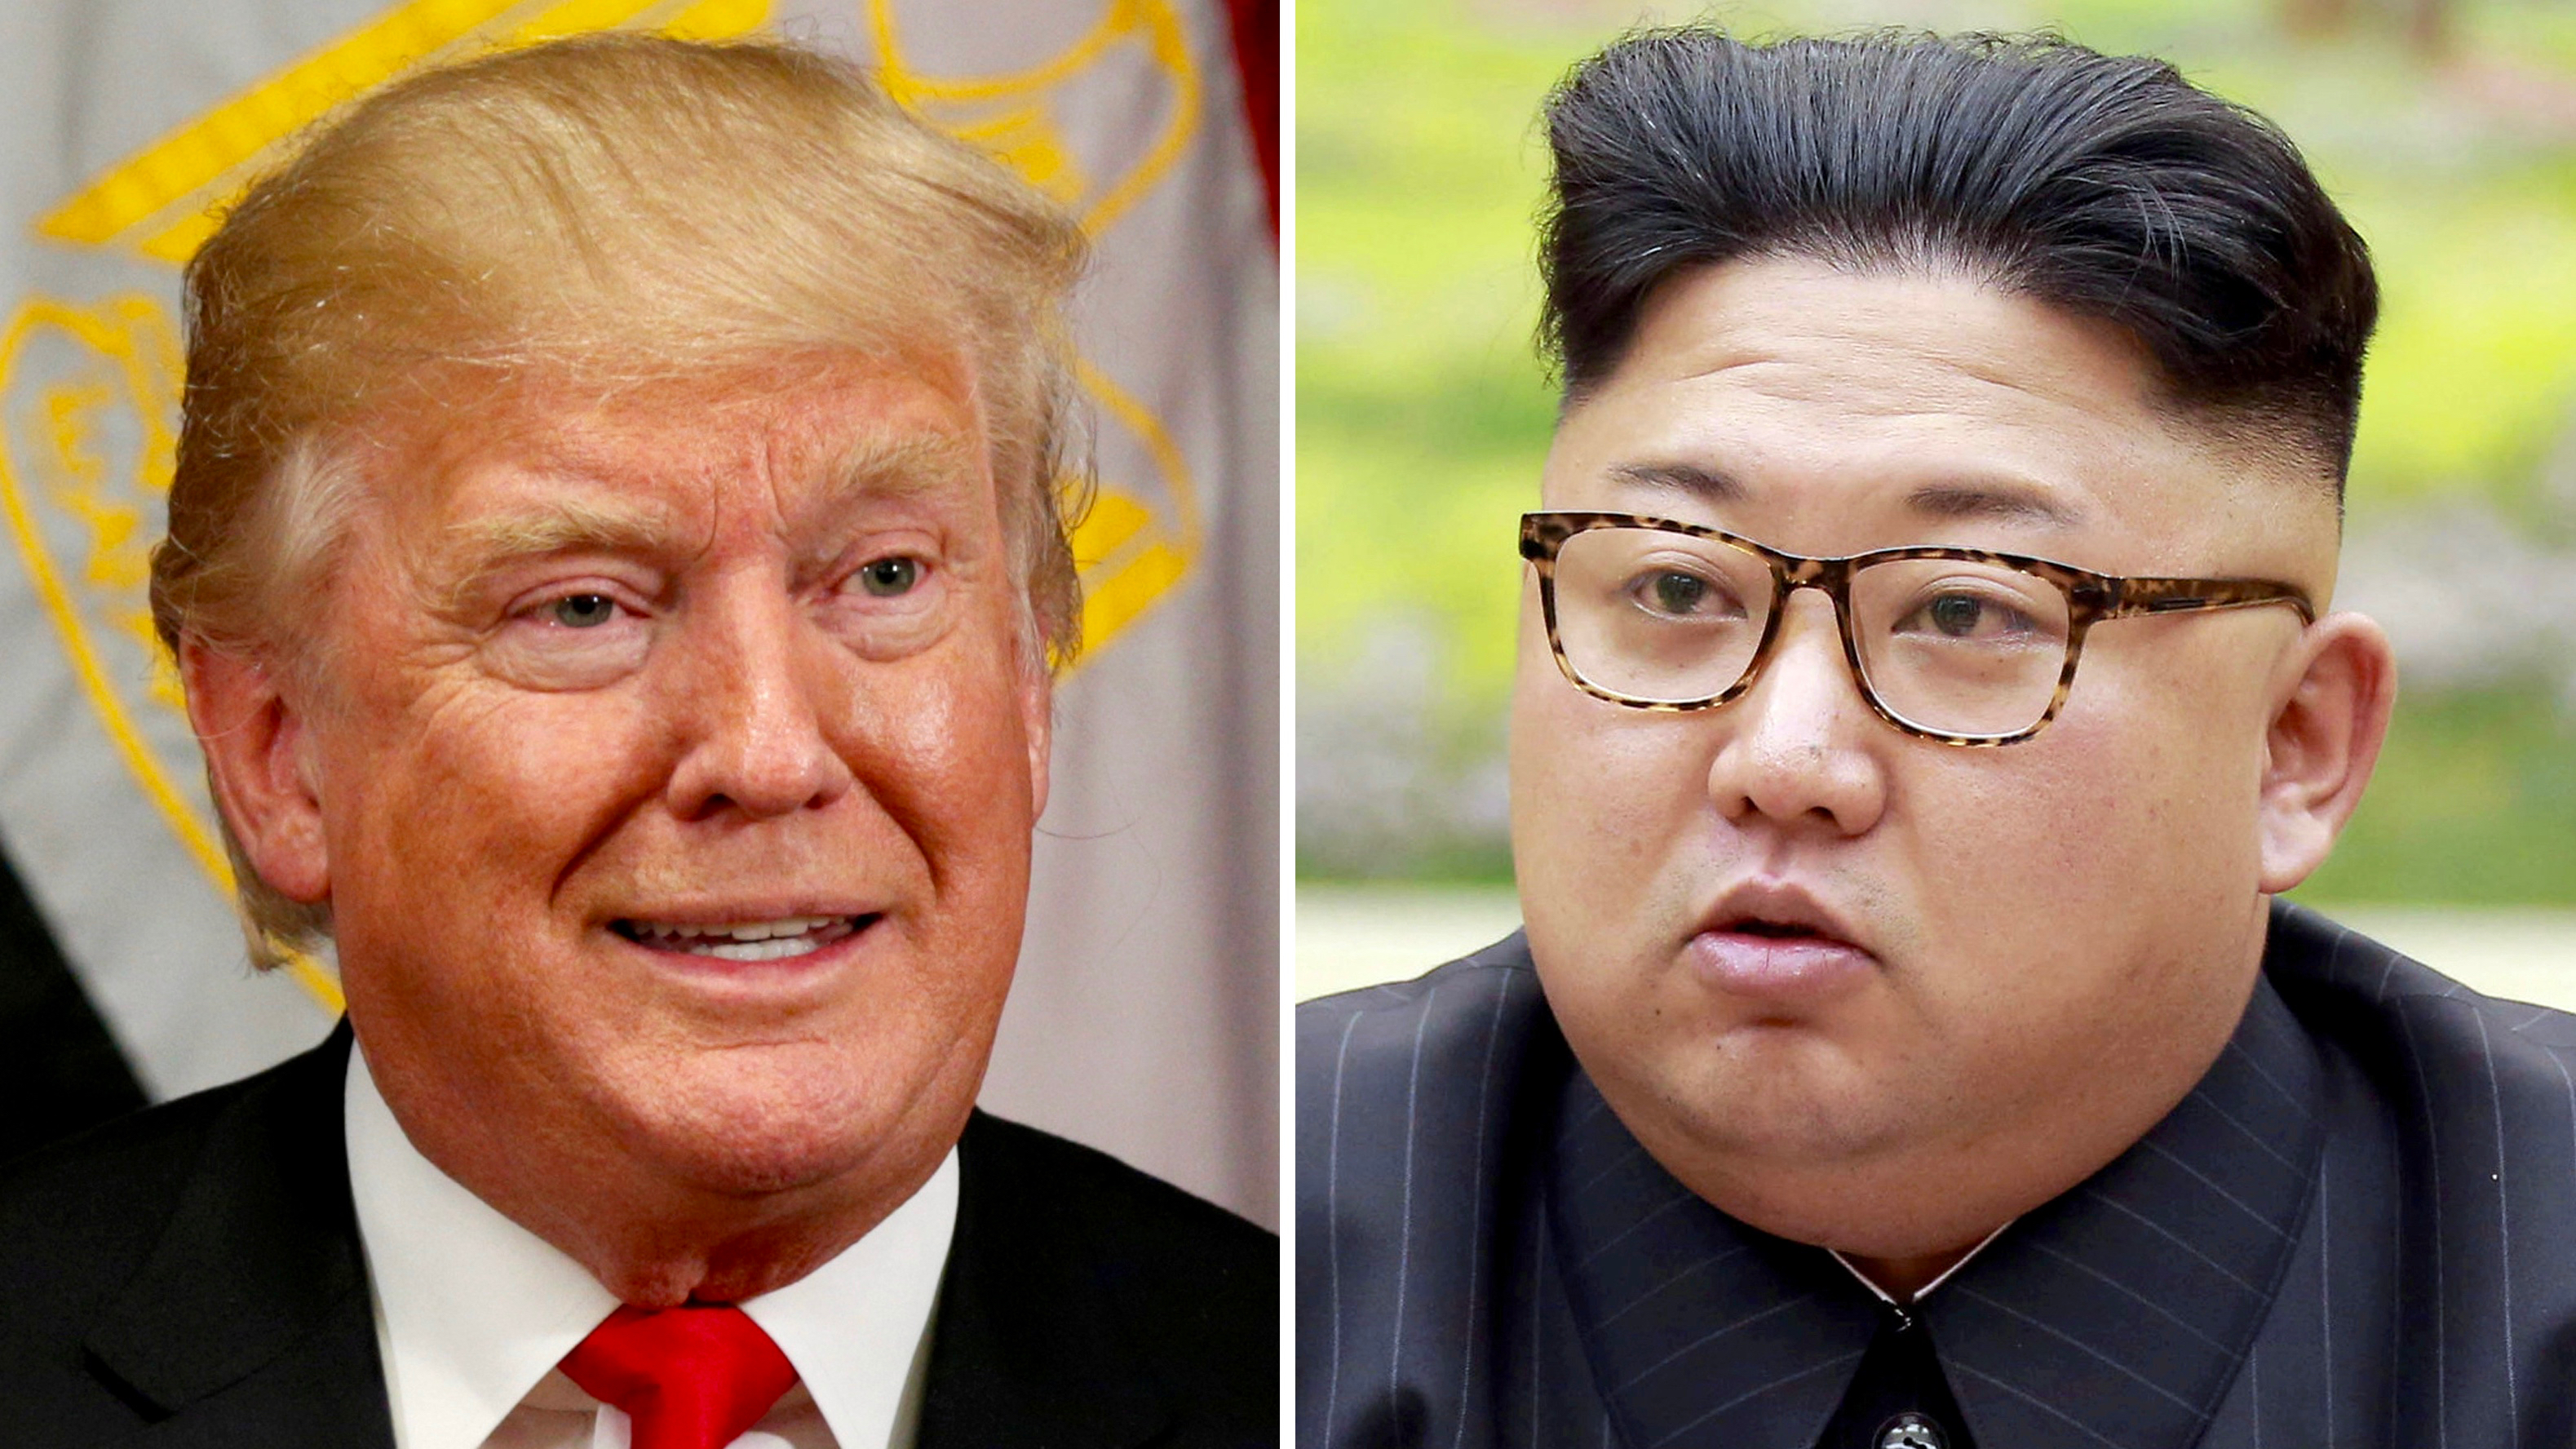 A combination photo shows US President Donald Trump in New York, Sept. 21, 2017, and North Korean leader Kim Jong-un in this undated photo released by North Korea's Korean Central News Agency in Pyongyang, Sept. 4, 2017.